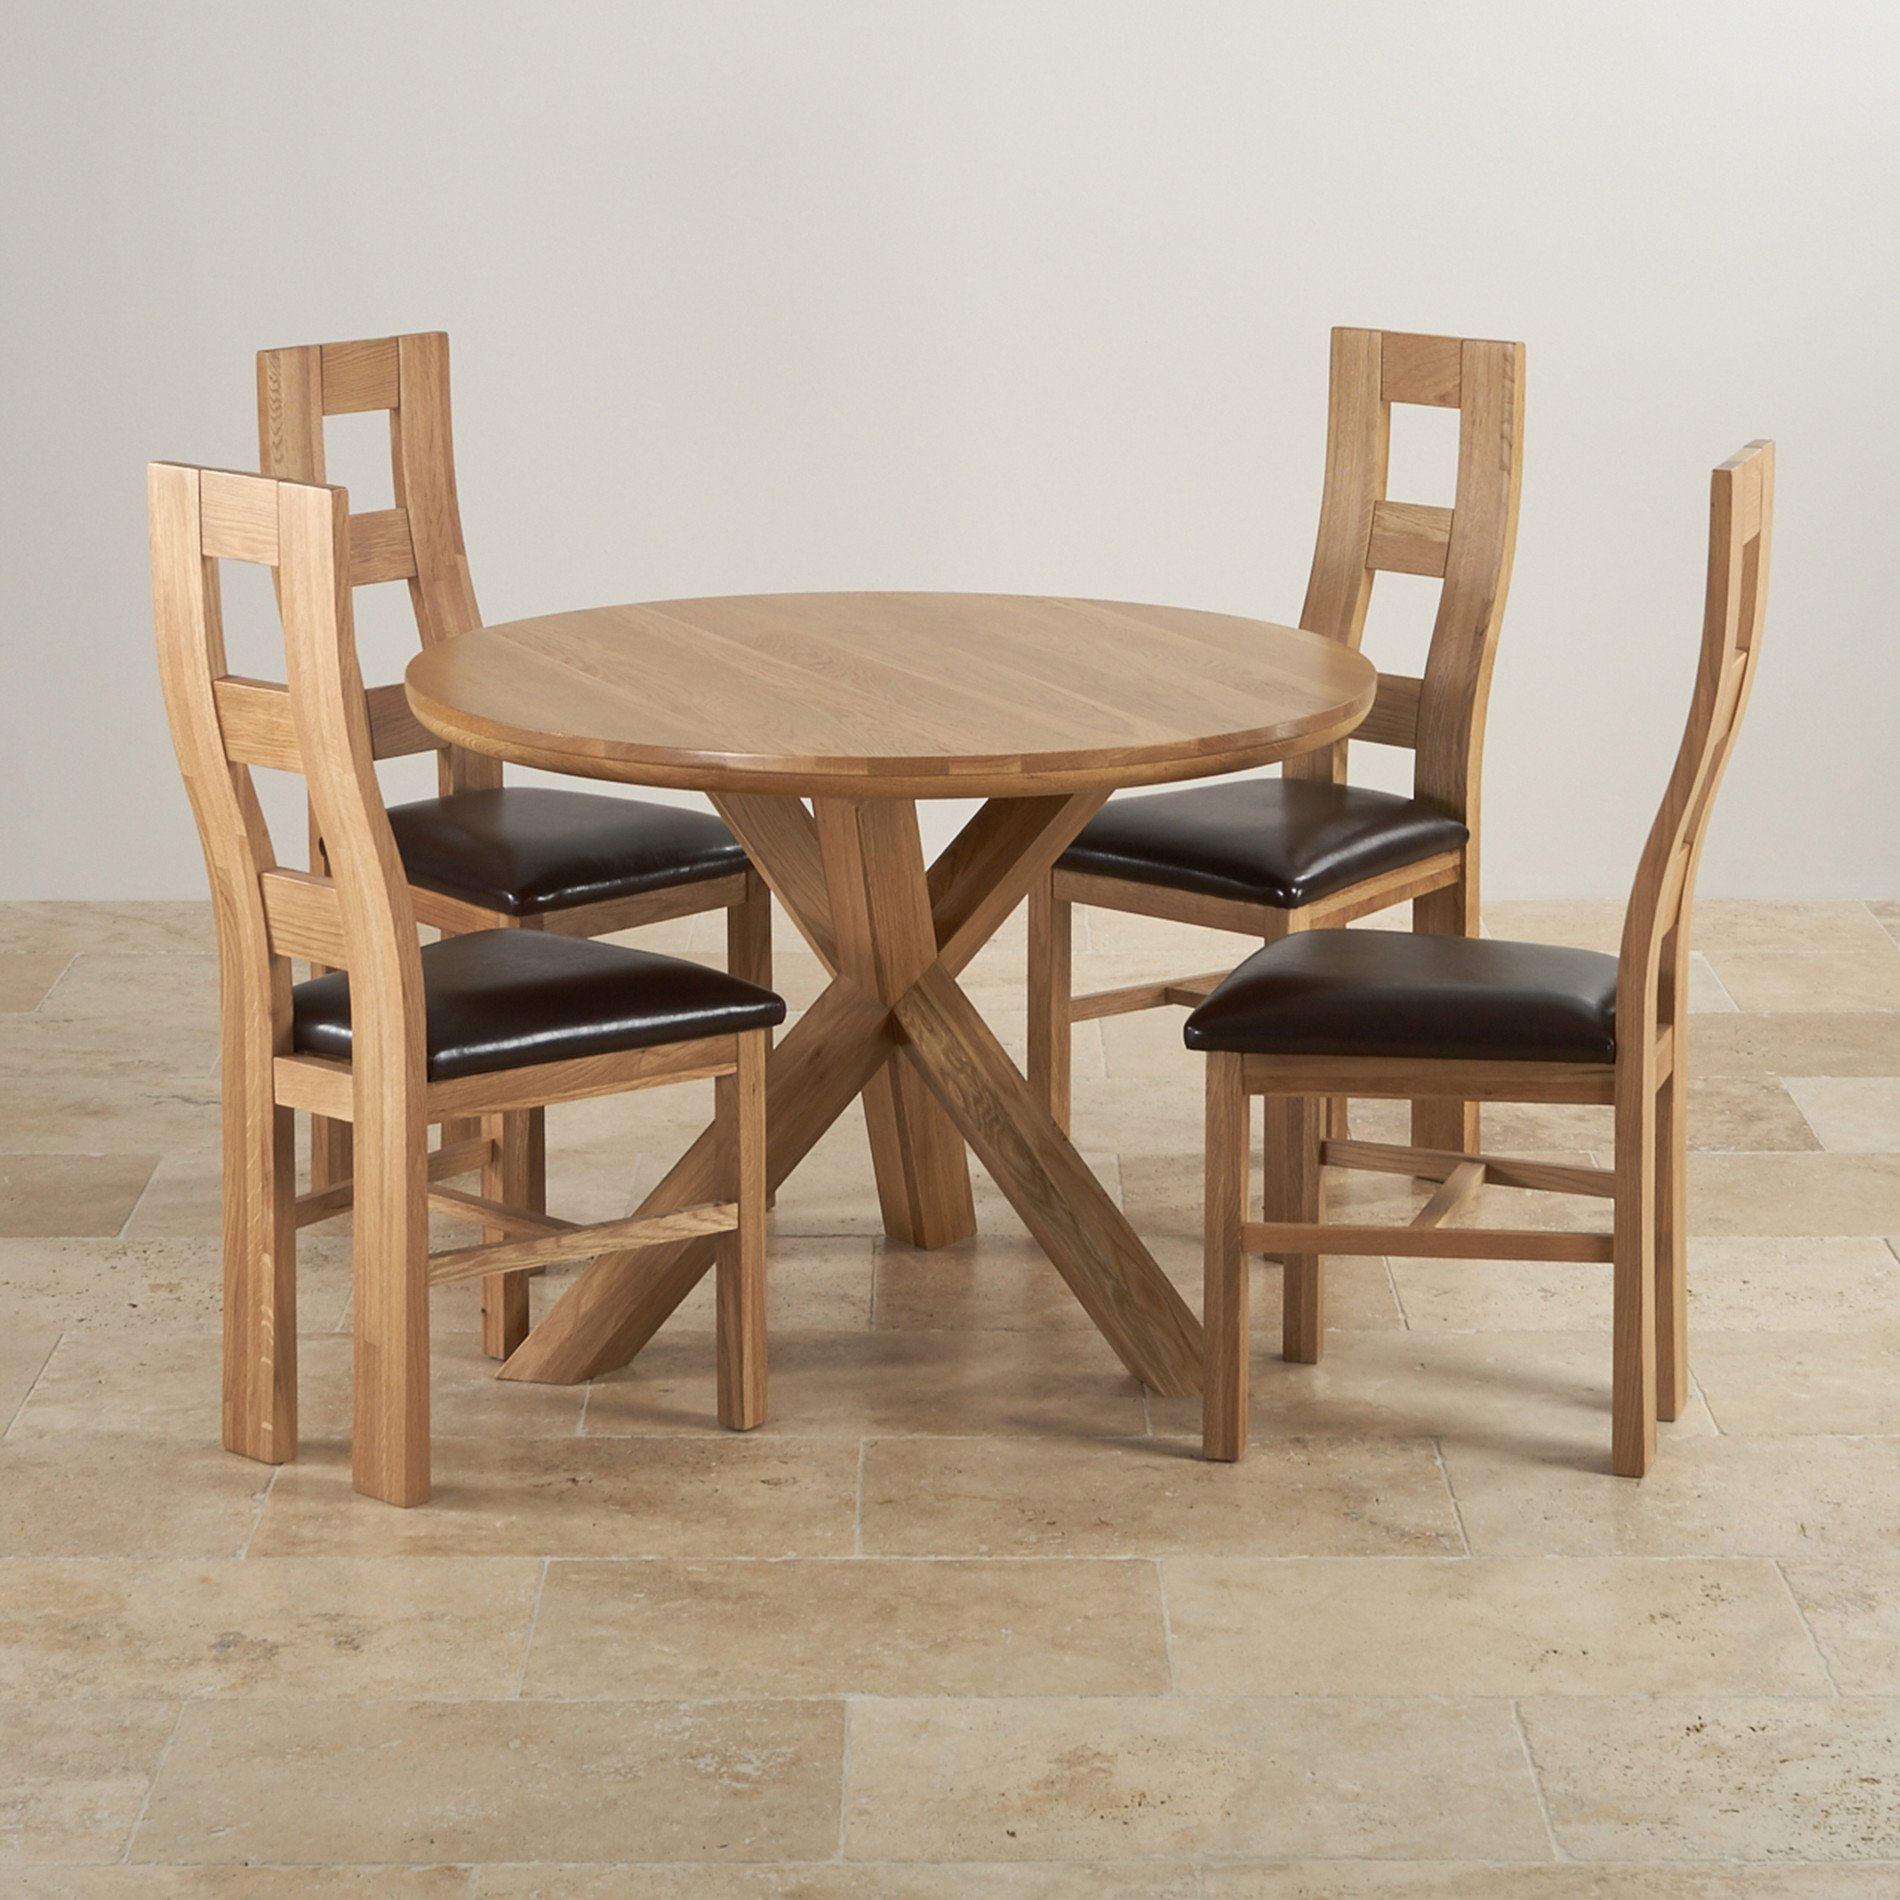 Round Dining Table And Chairs Natural Oak Dining Set 3ft 7 Quot Table 43 4 Wave Back Chairs